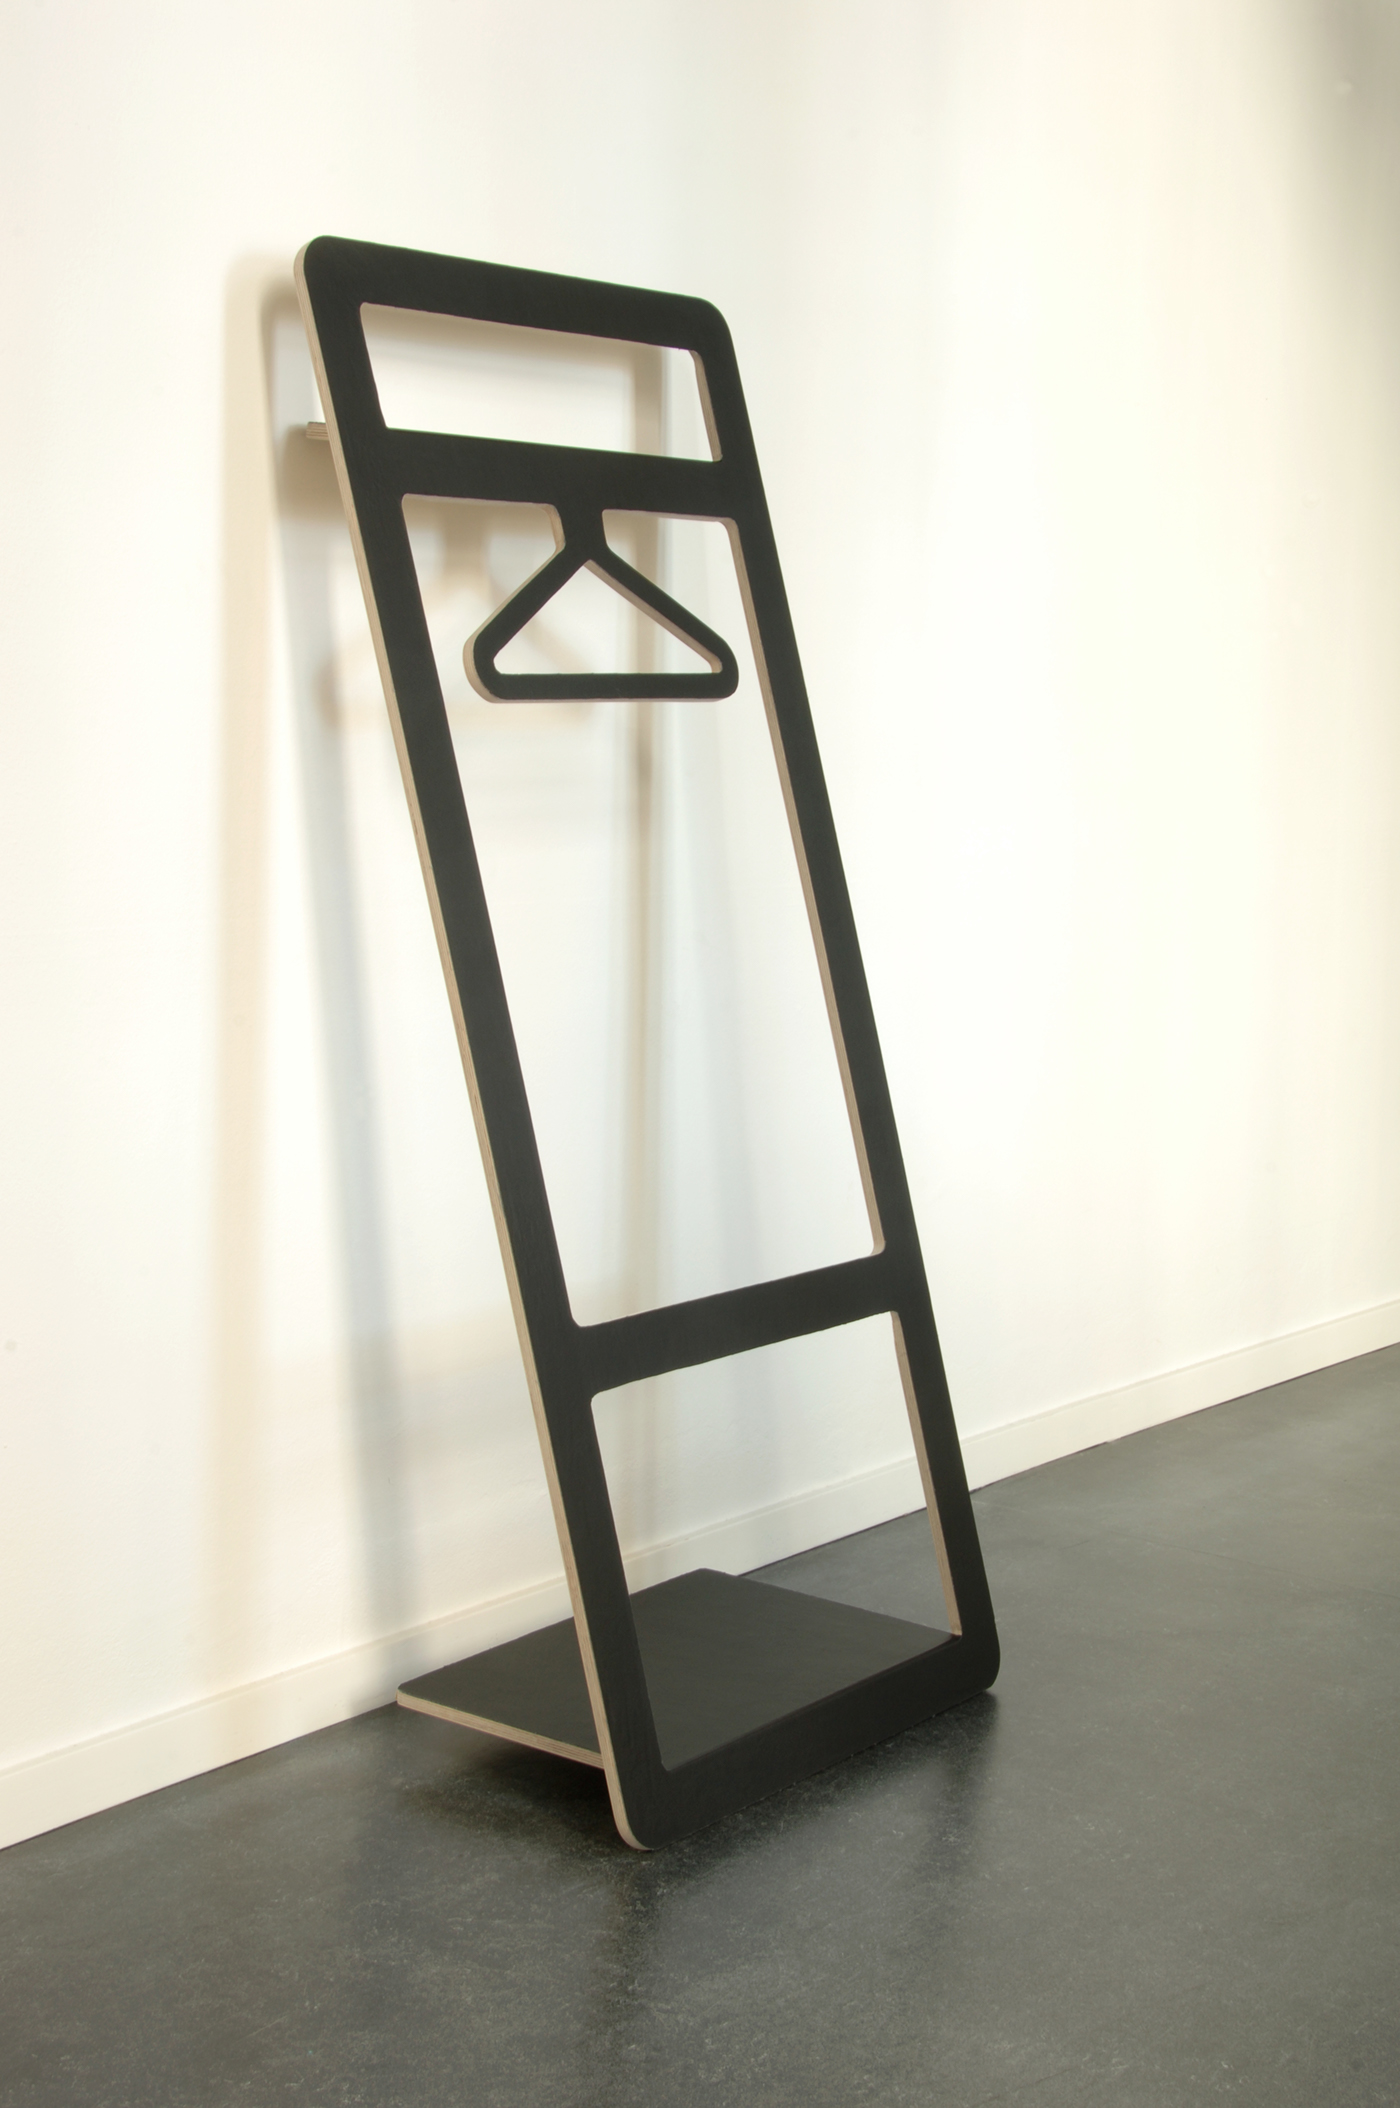 Suitable valet stand on Behance